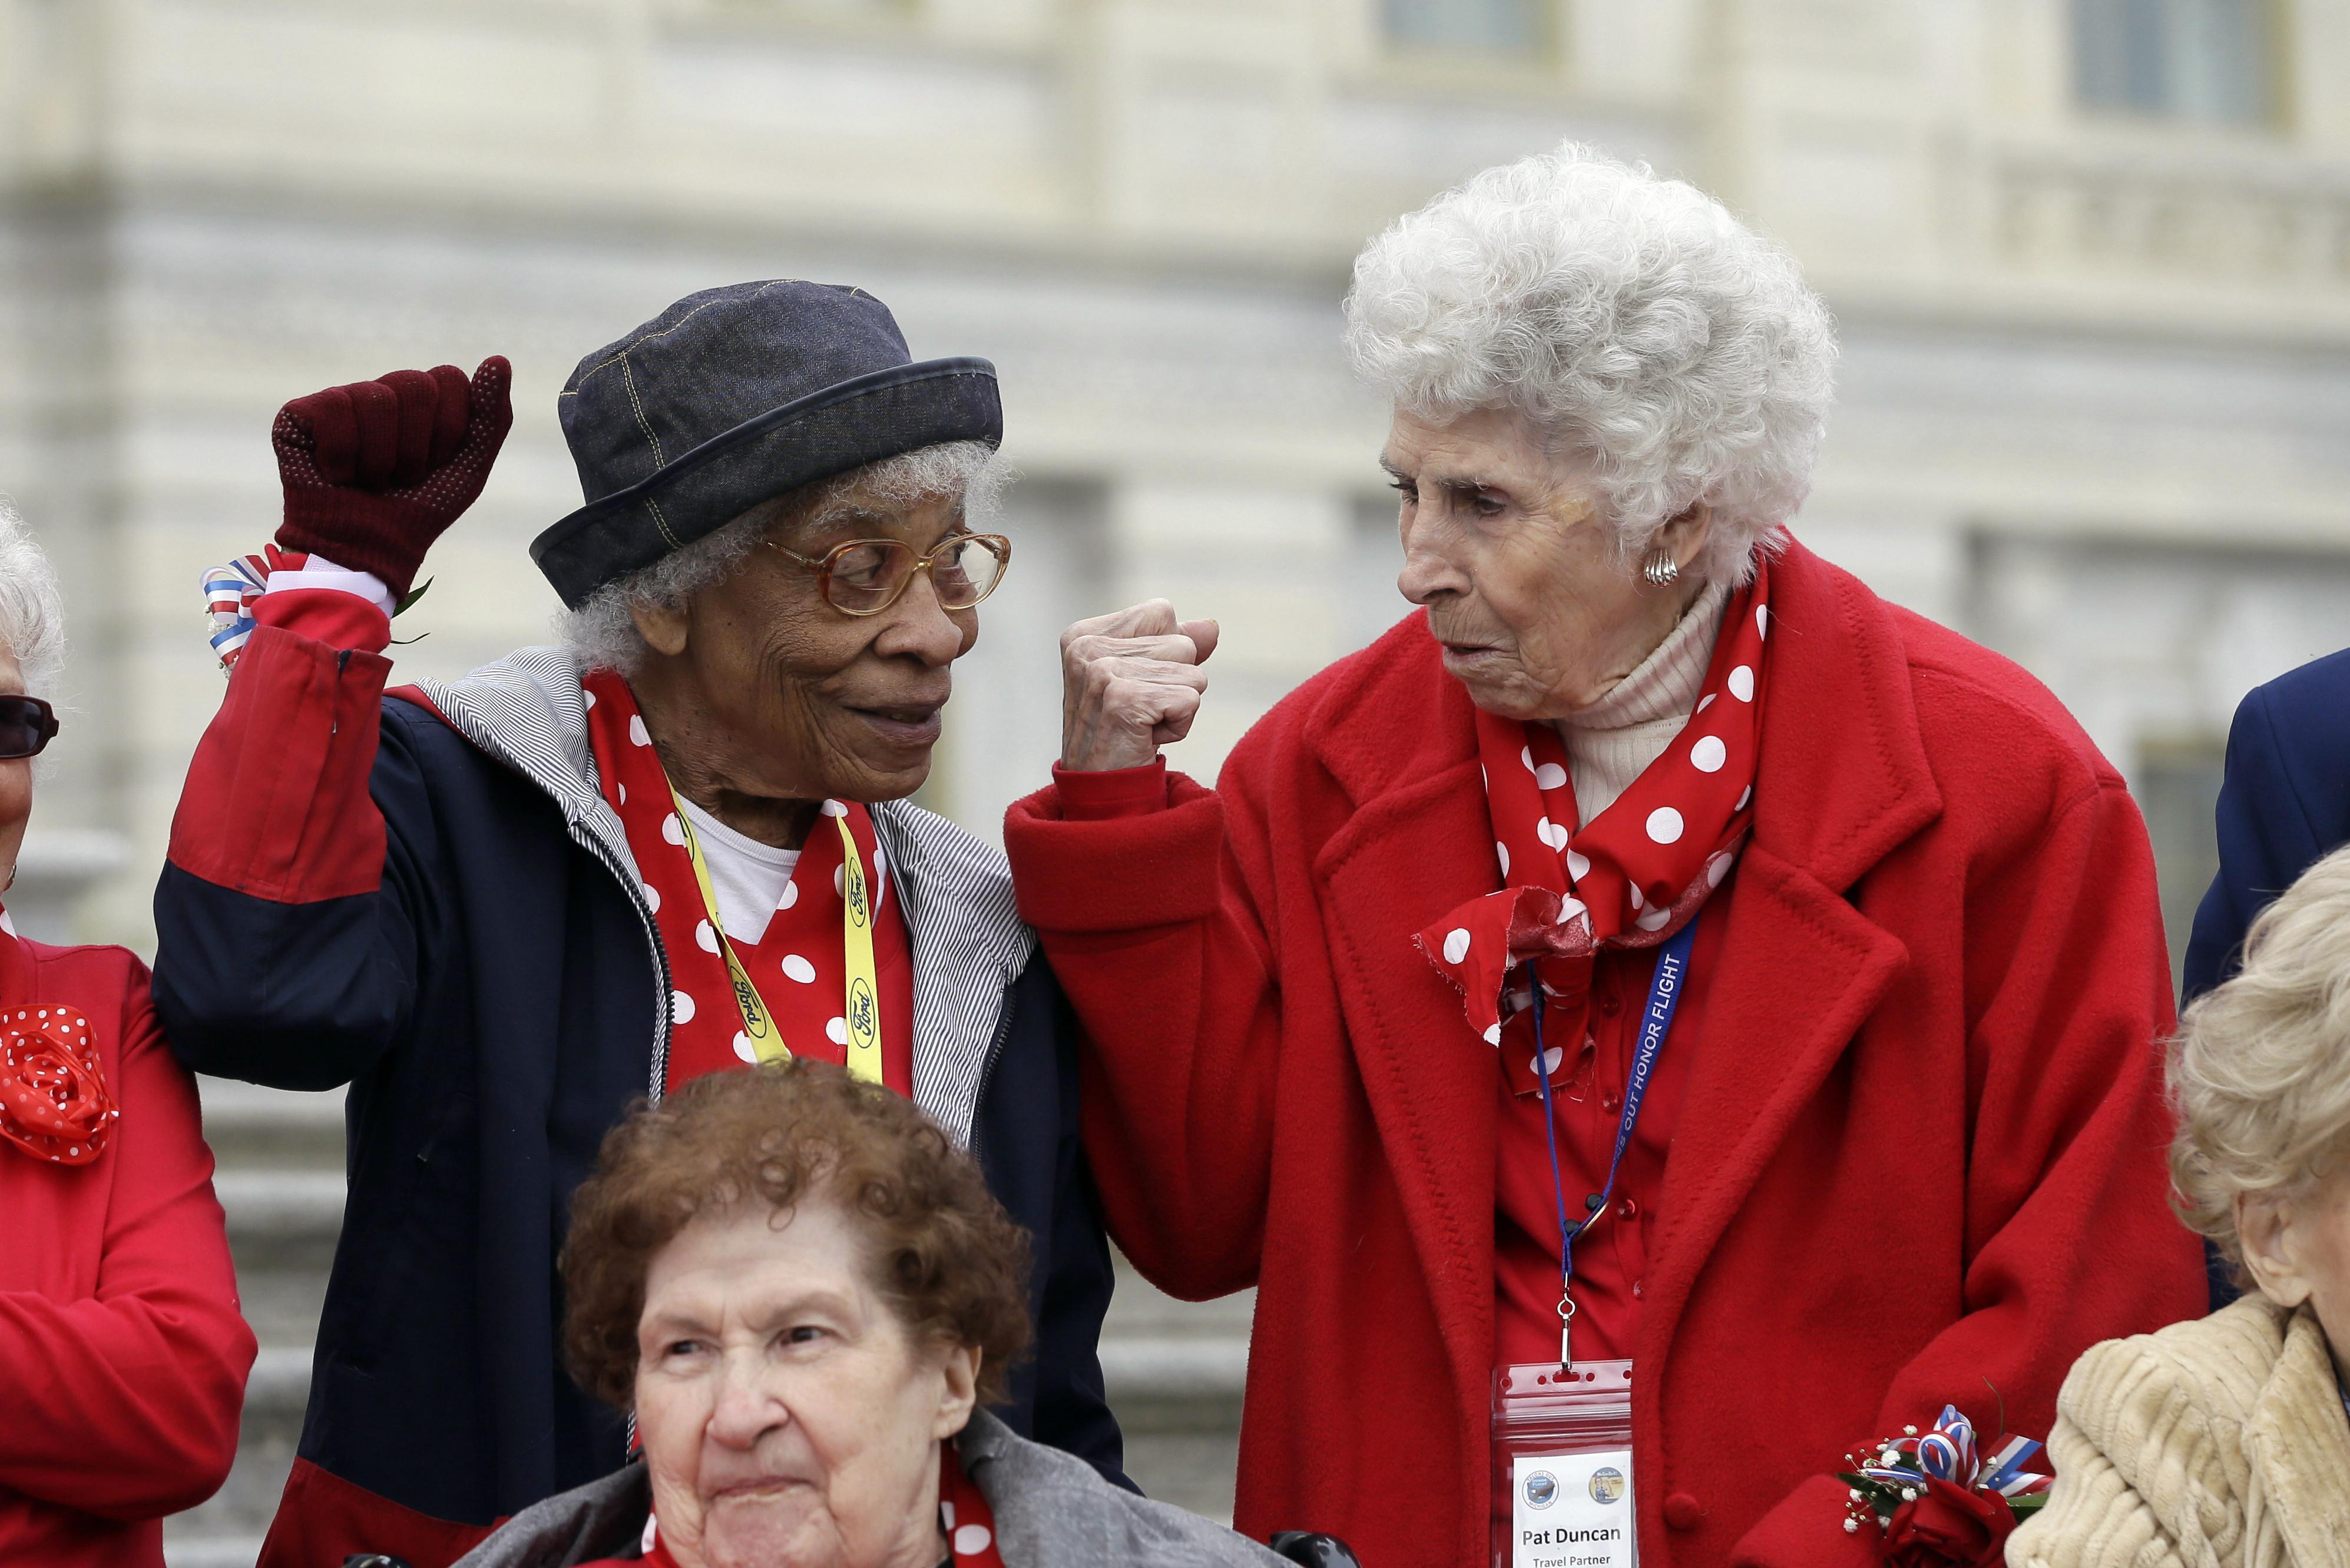 Rosie The Riveters Honored With Visit To Washington The Spokesman